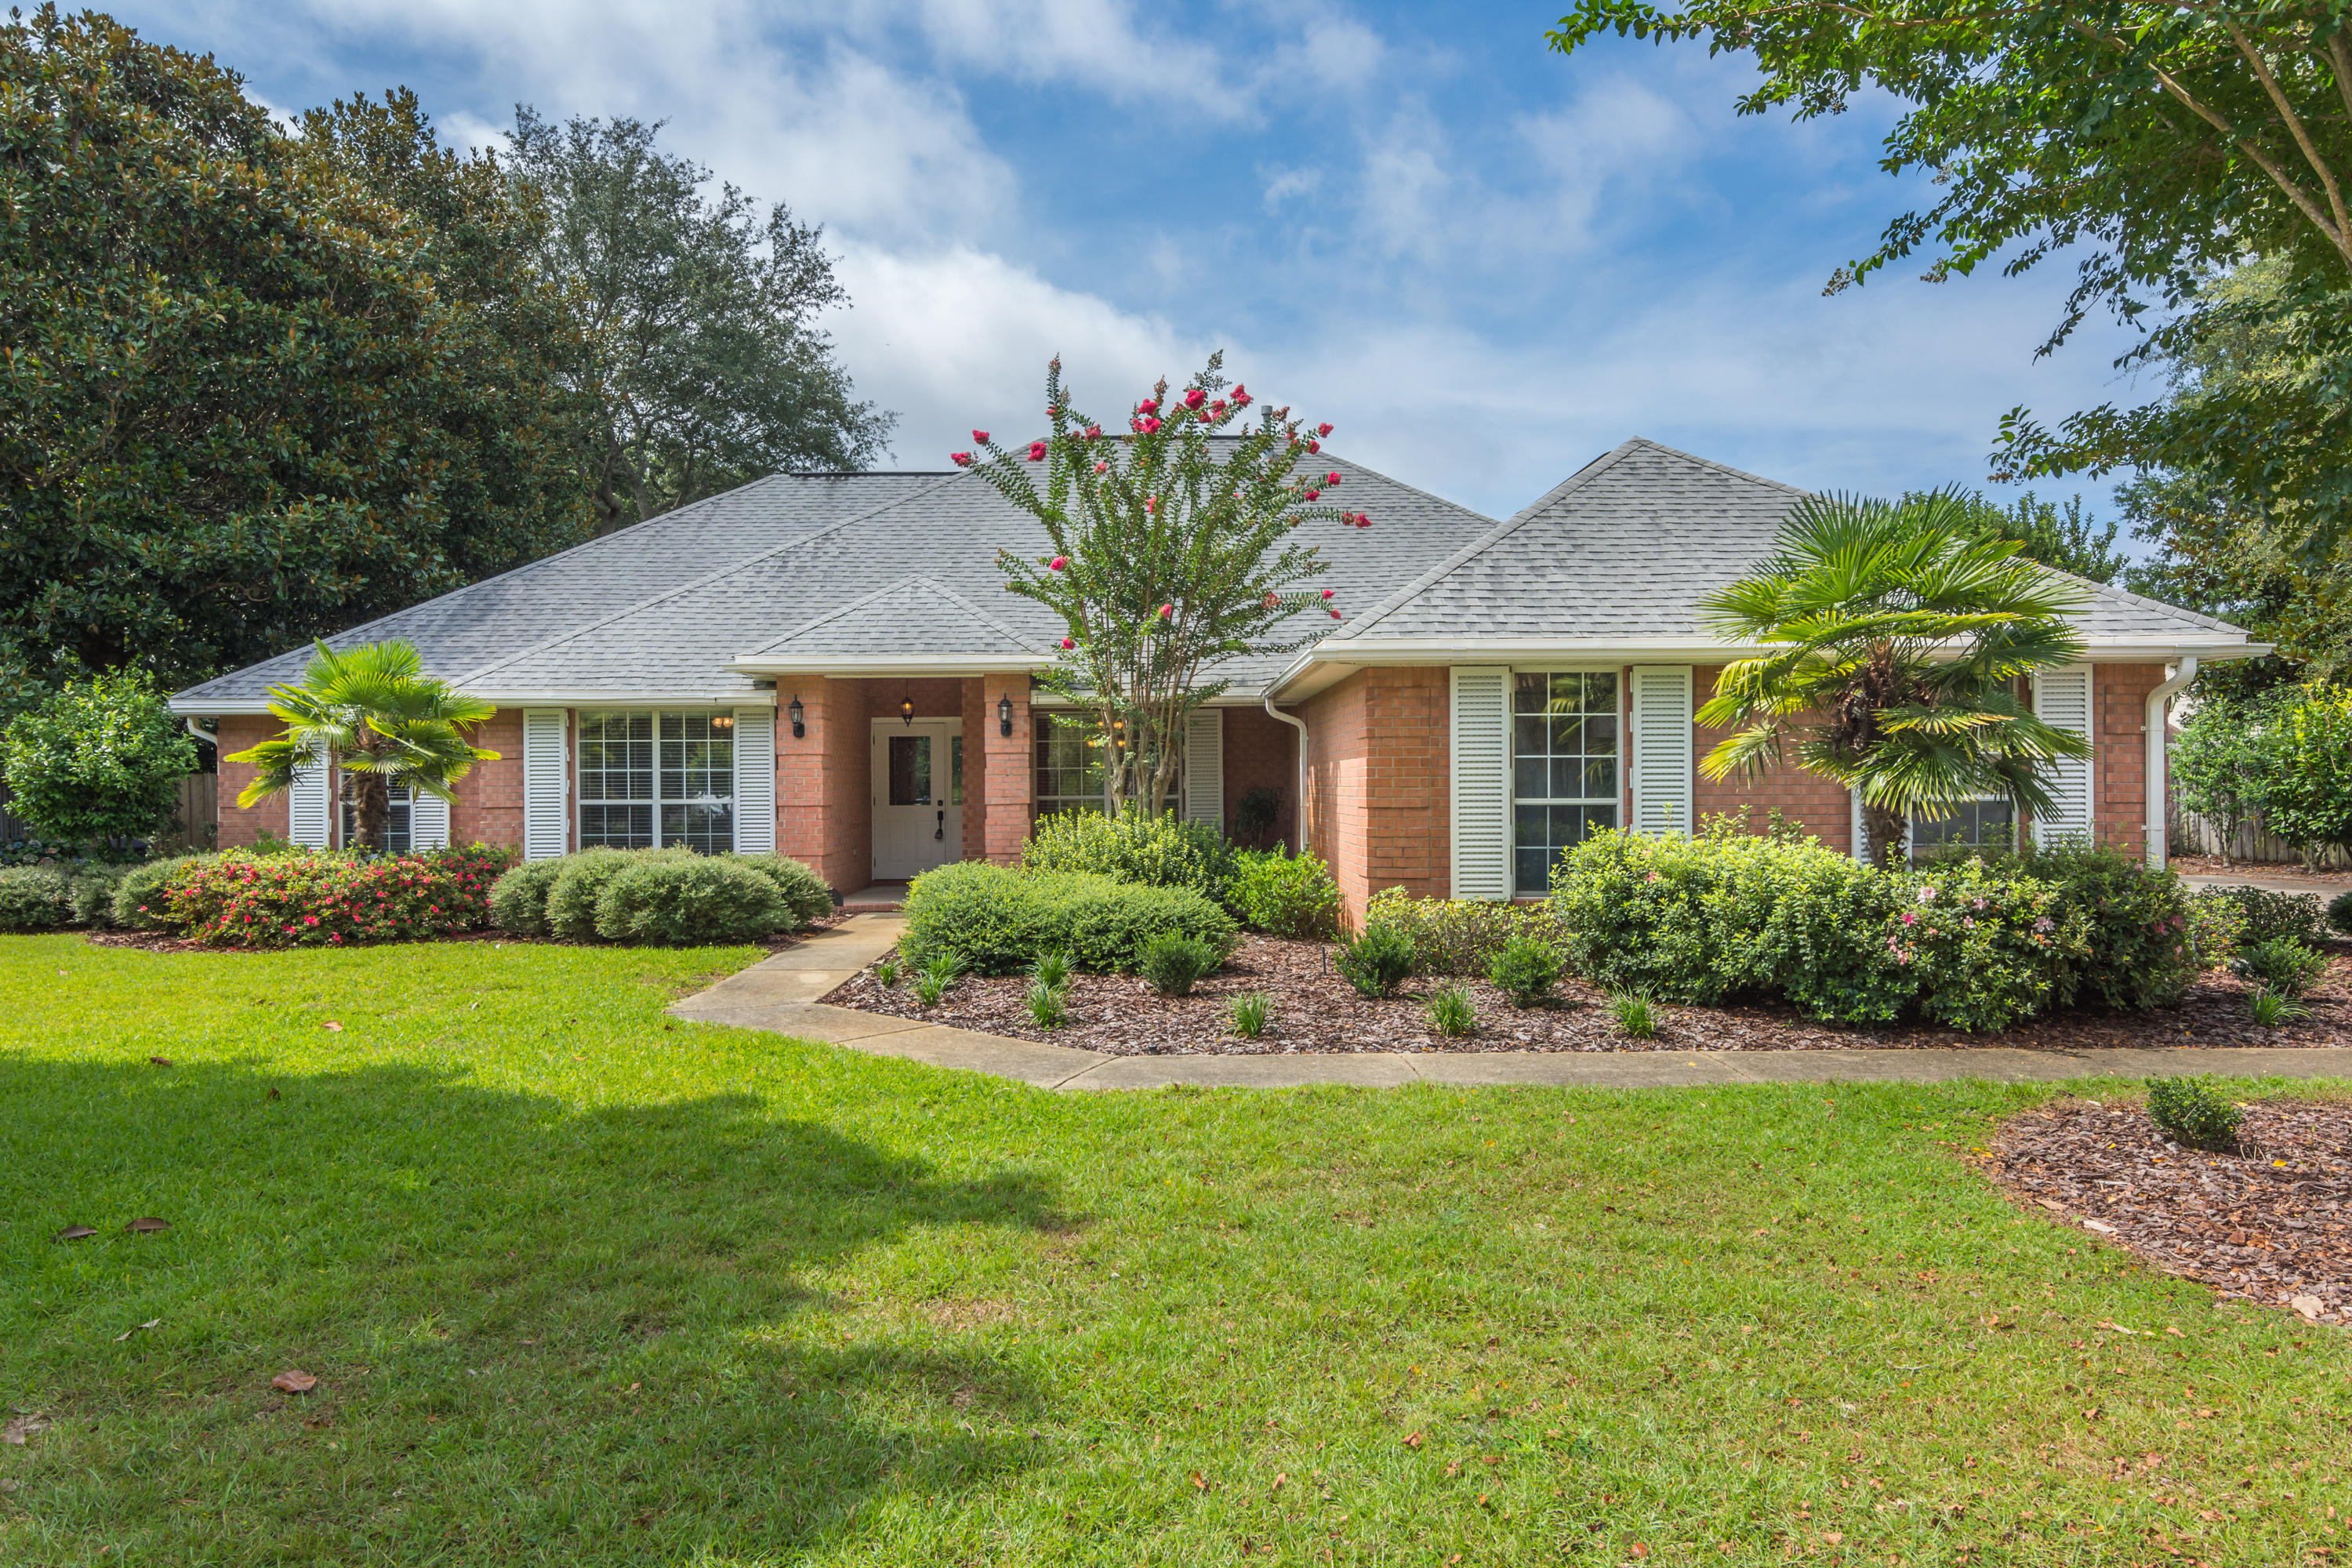 Photo of home for sale at 4244 Otterlake, Niceville FL